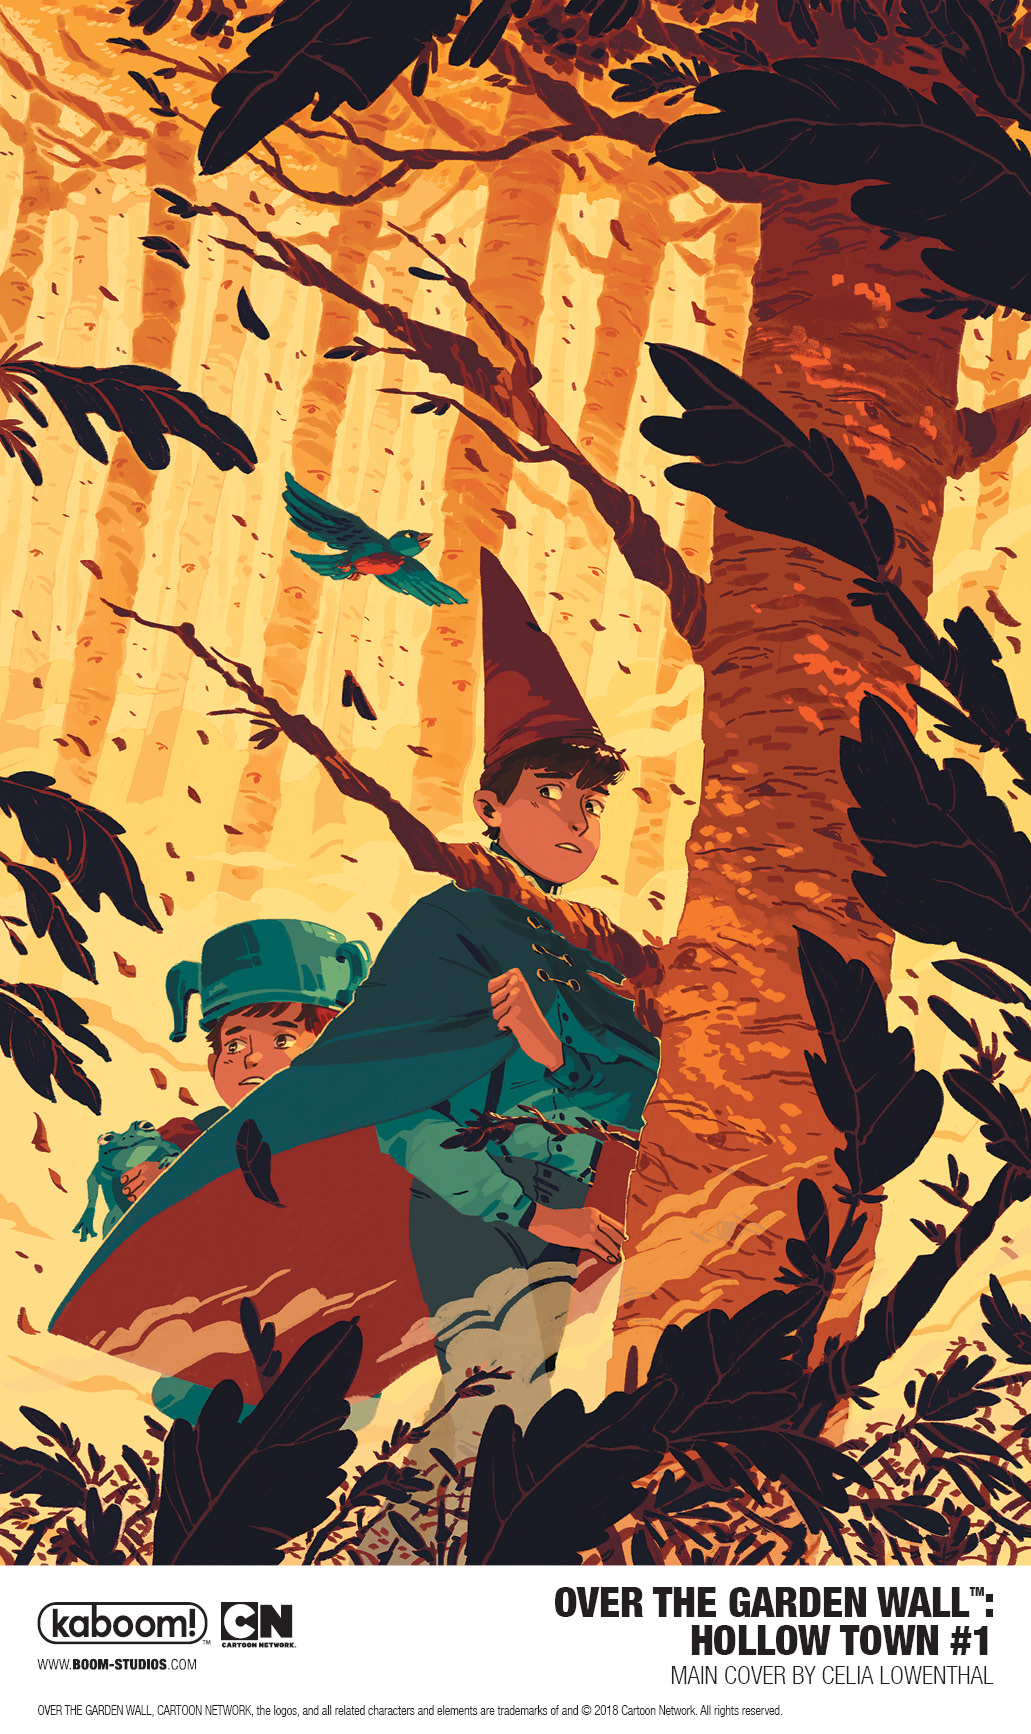 Over The Garden Wall: Hollow Town #1 (2018)